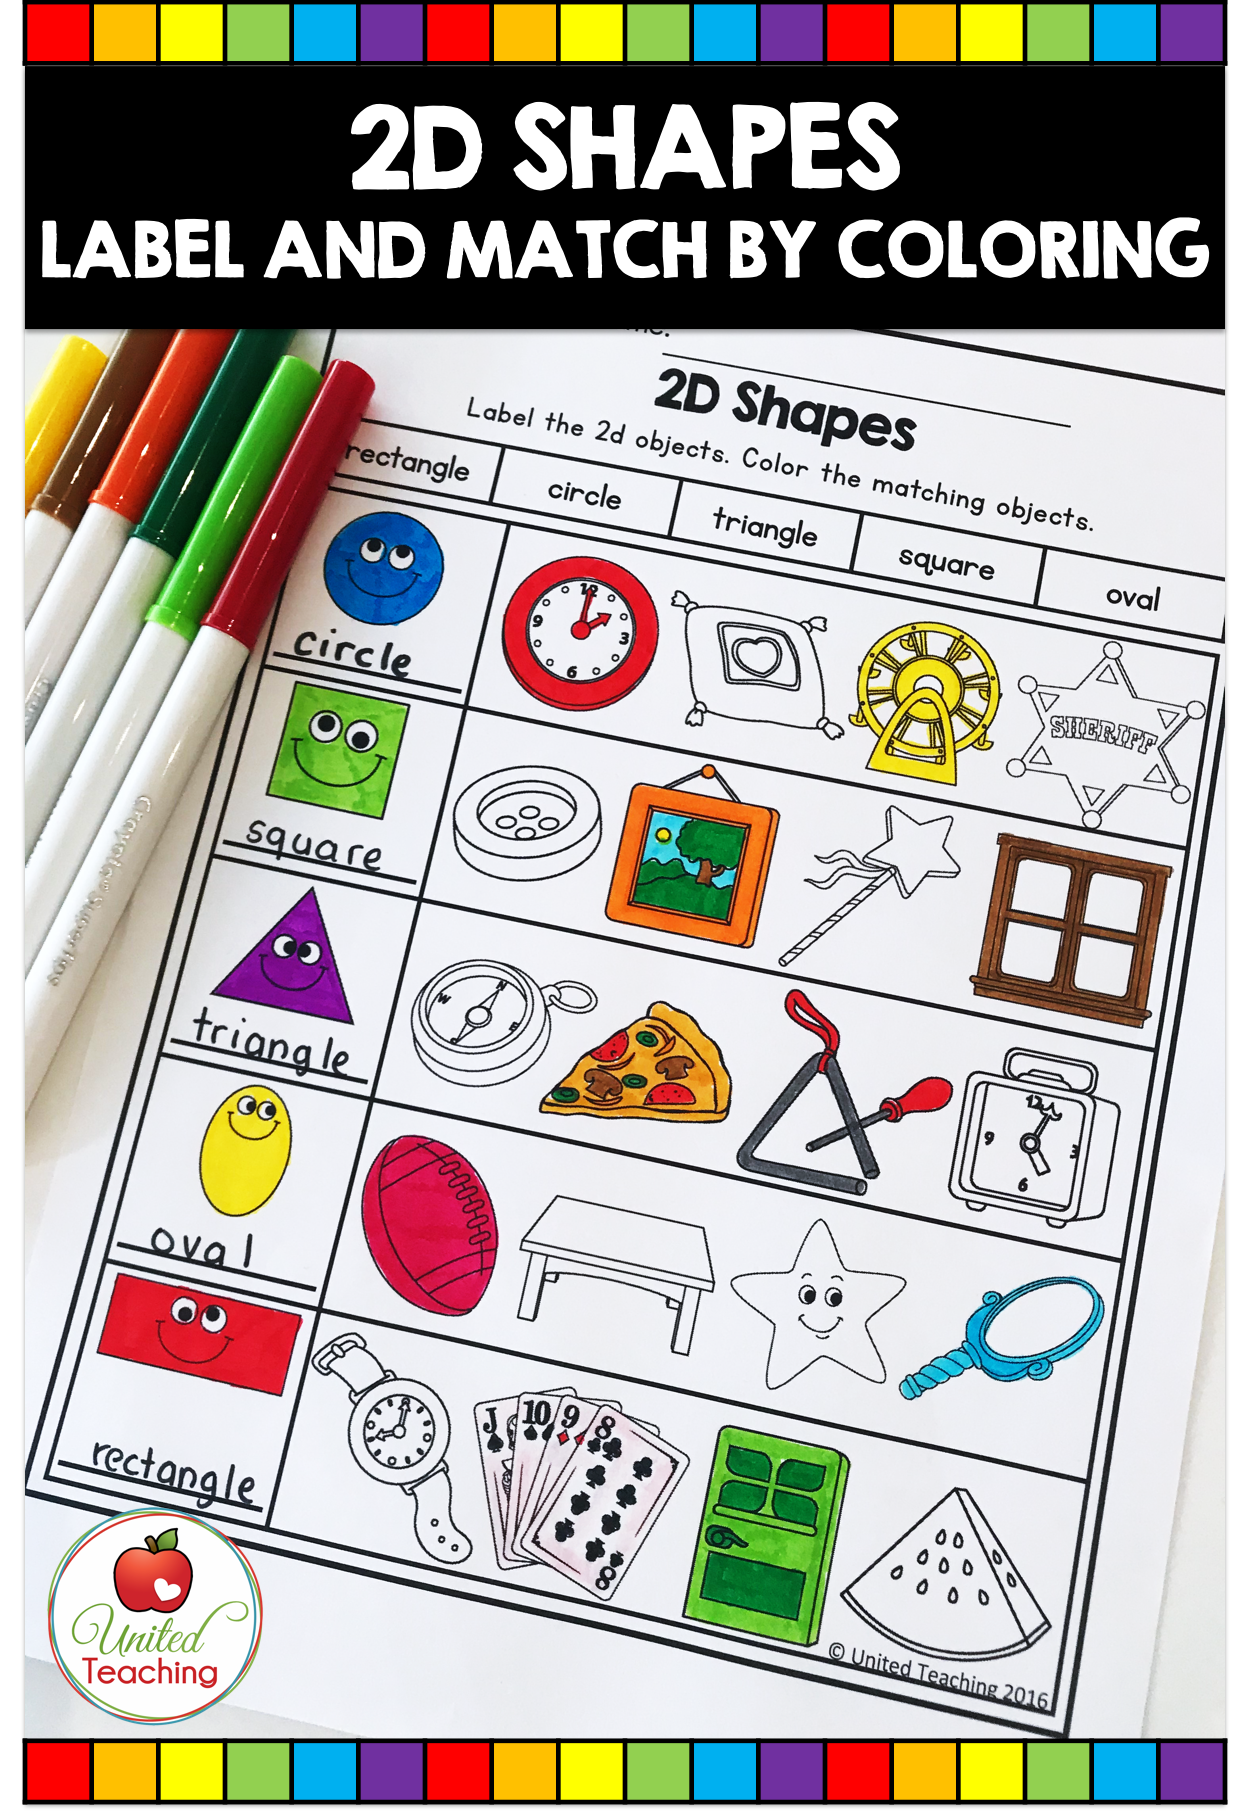 medium resolution of FALL MATH ACTIVITIES (1ST GRADE) - United Teaching   Shapes worksheets